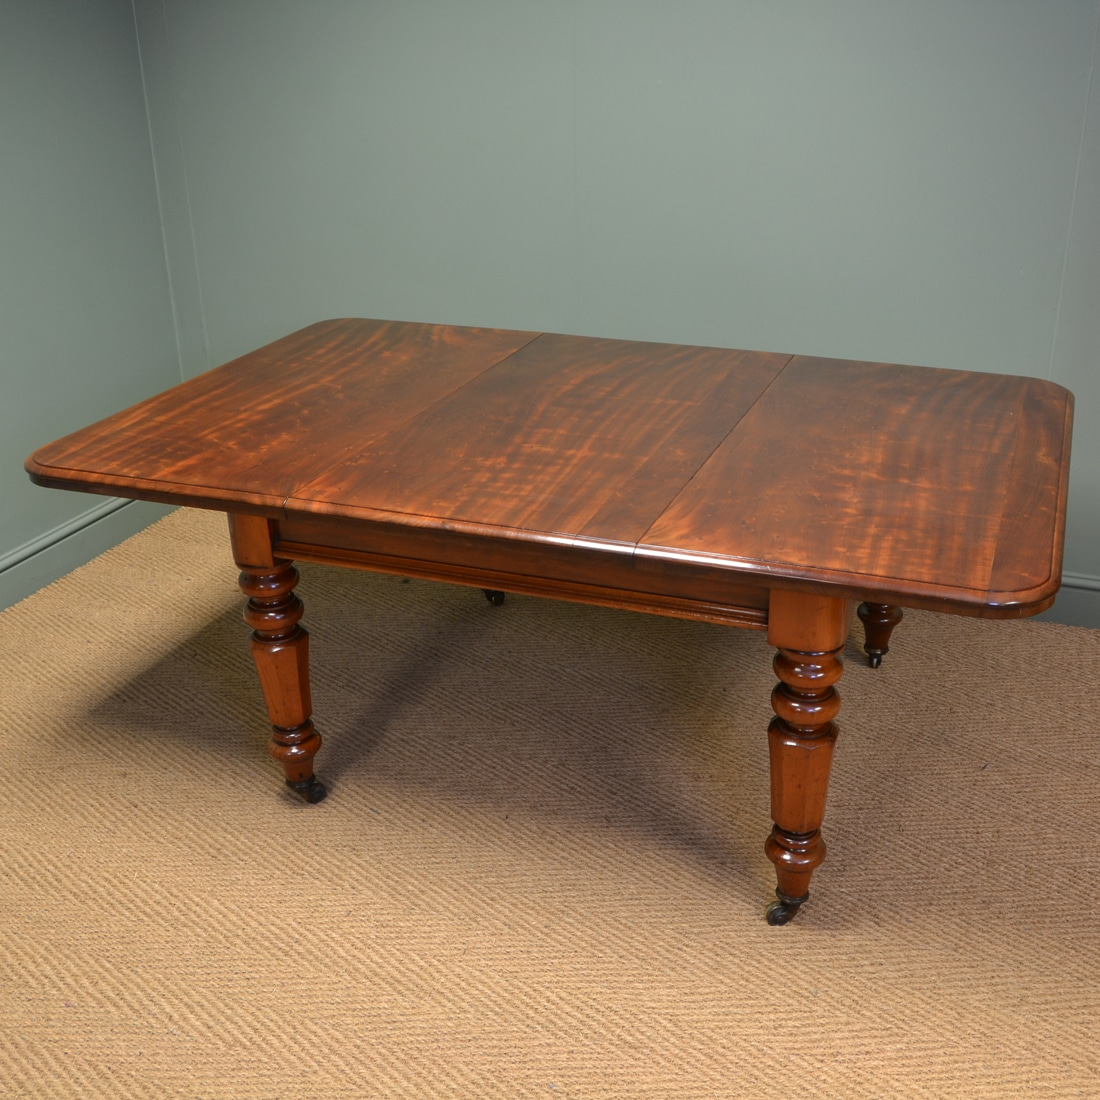 Spectacular Victorian Plum Pudding Extending Antique Dining Table - Antiques World & Spectacular Victorian Plum Pudding Extending Antique Dining Table ...